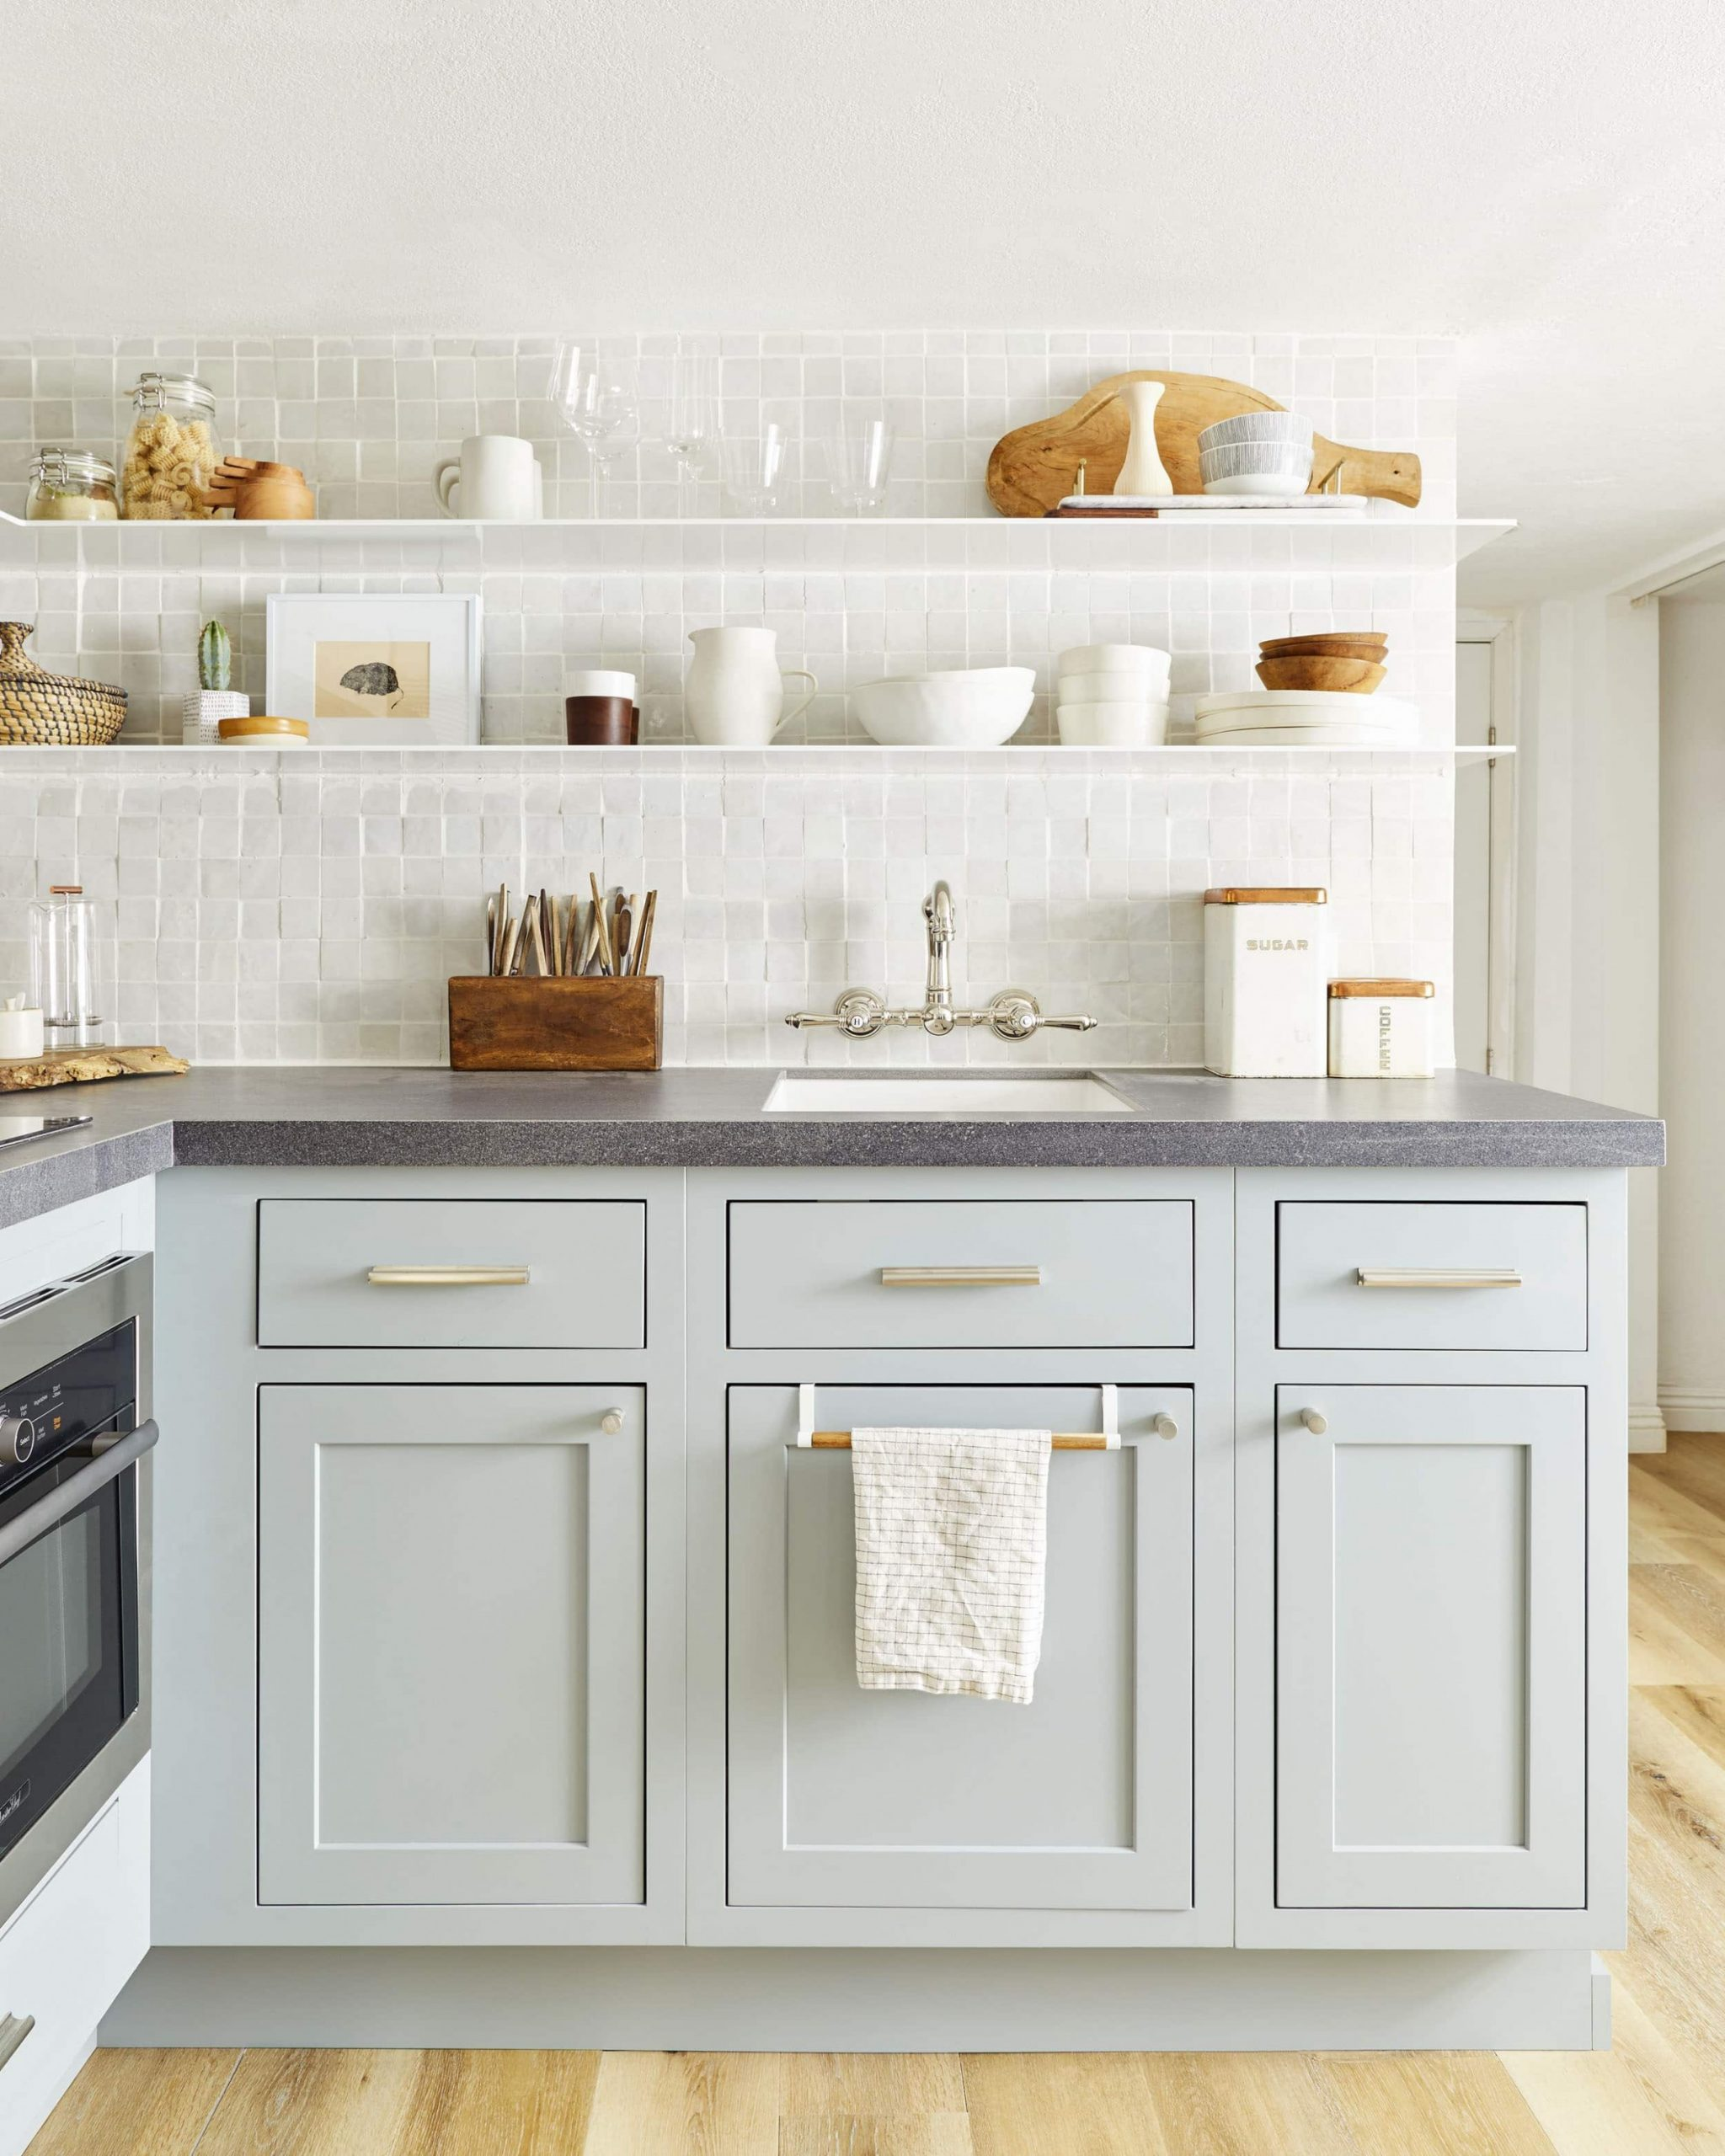 12 of Our Favorite (Budget-Friendly) Cabinet Hardware Picks - Long Cabinet Pulls Kitchen